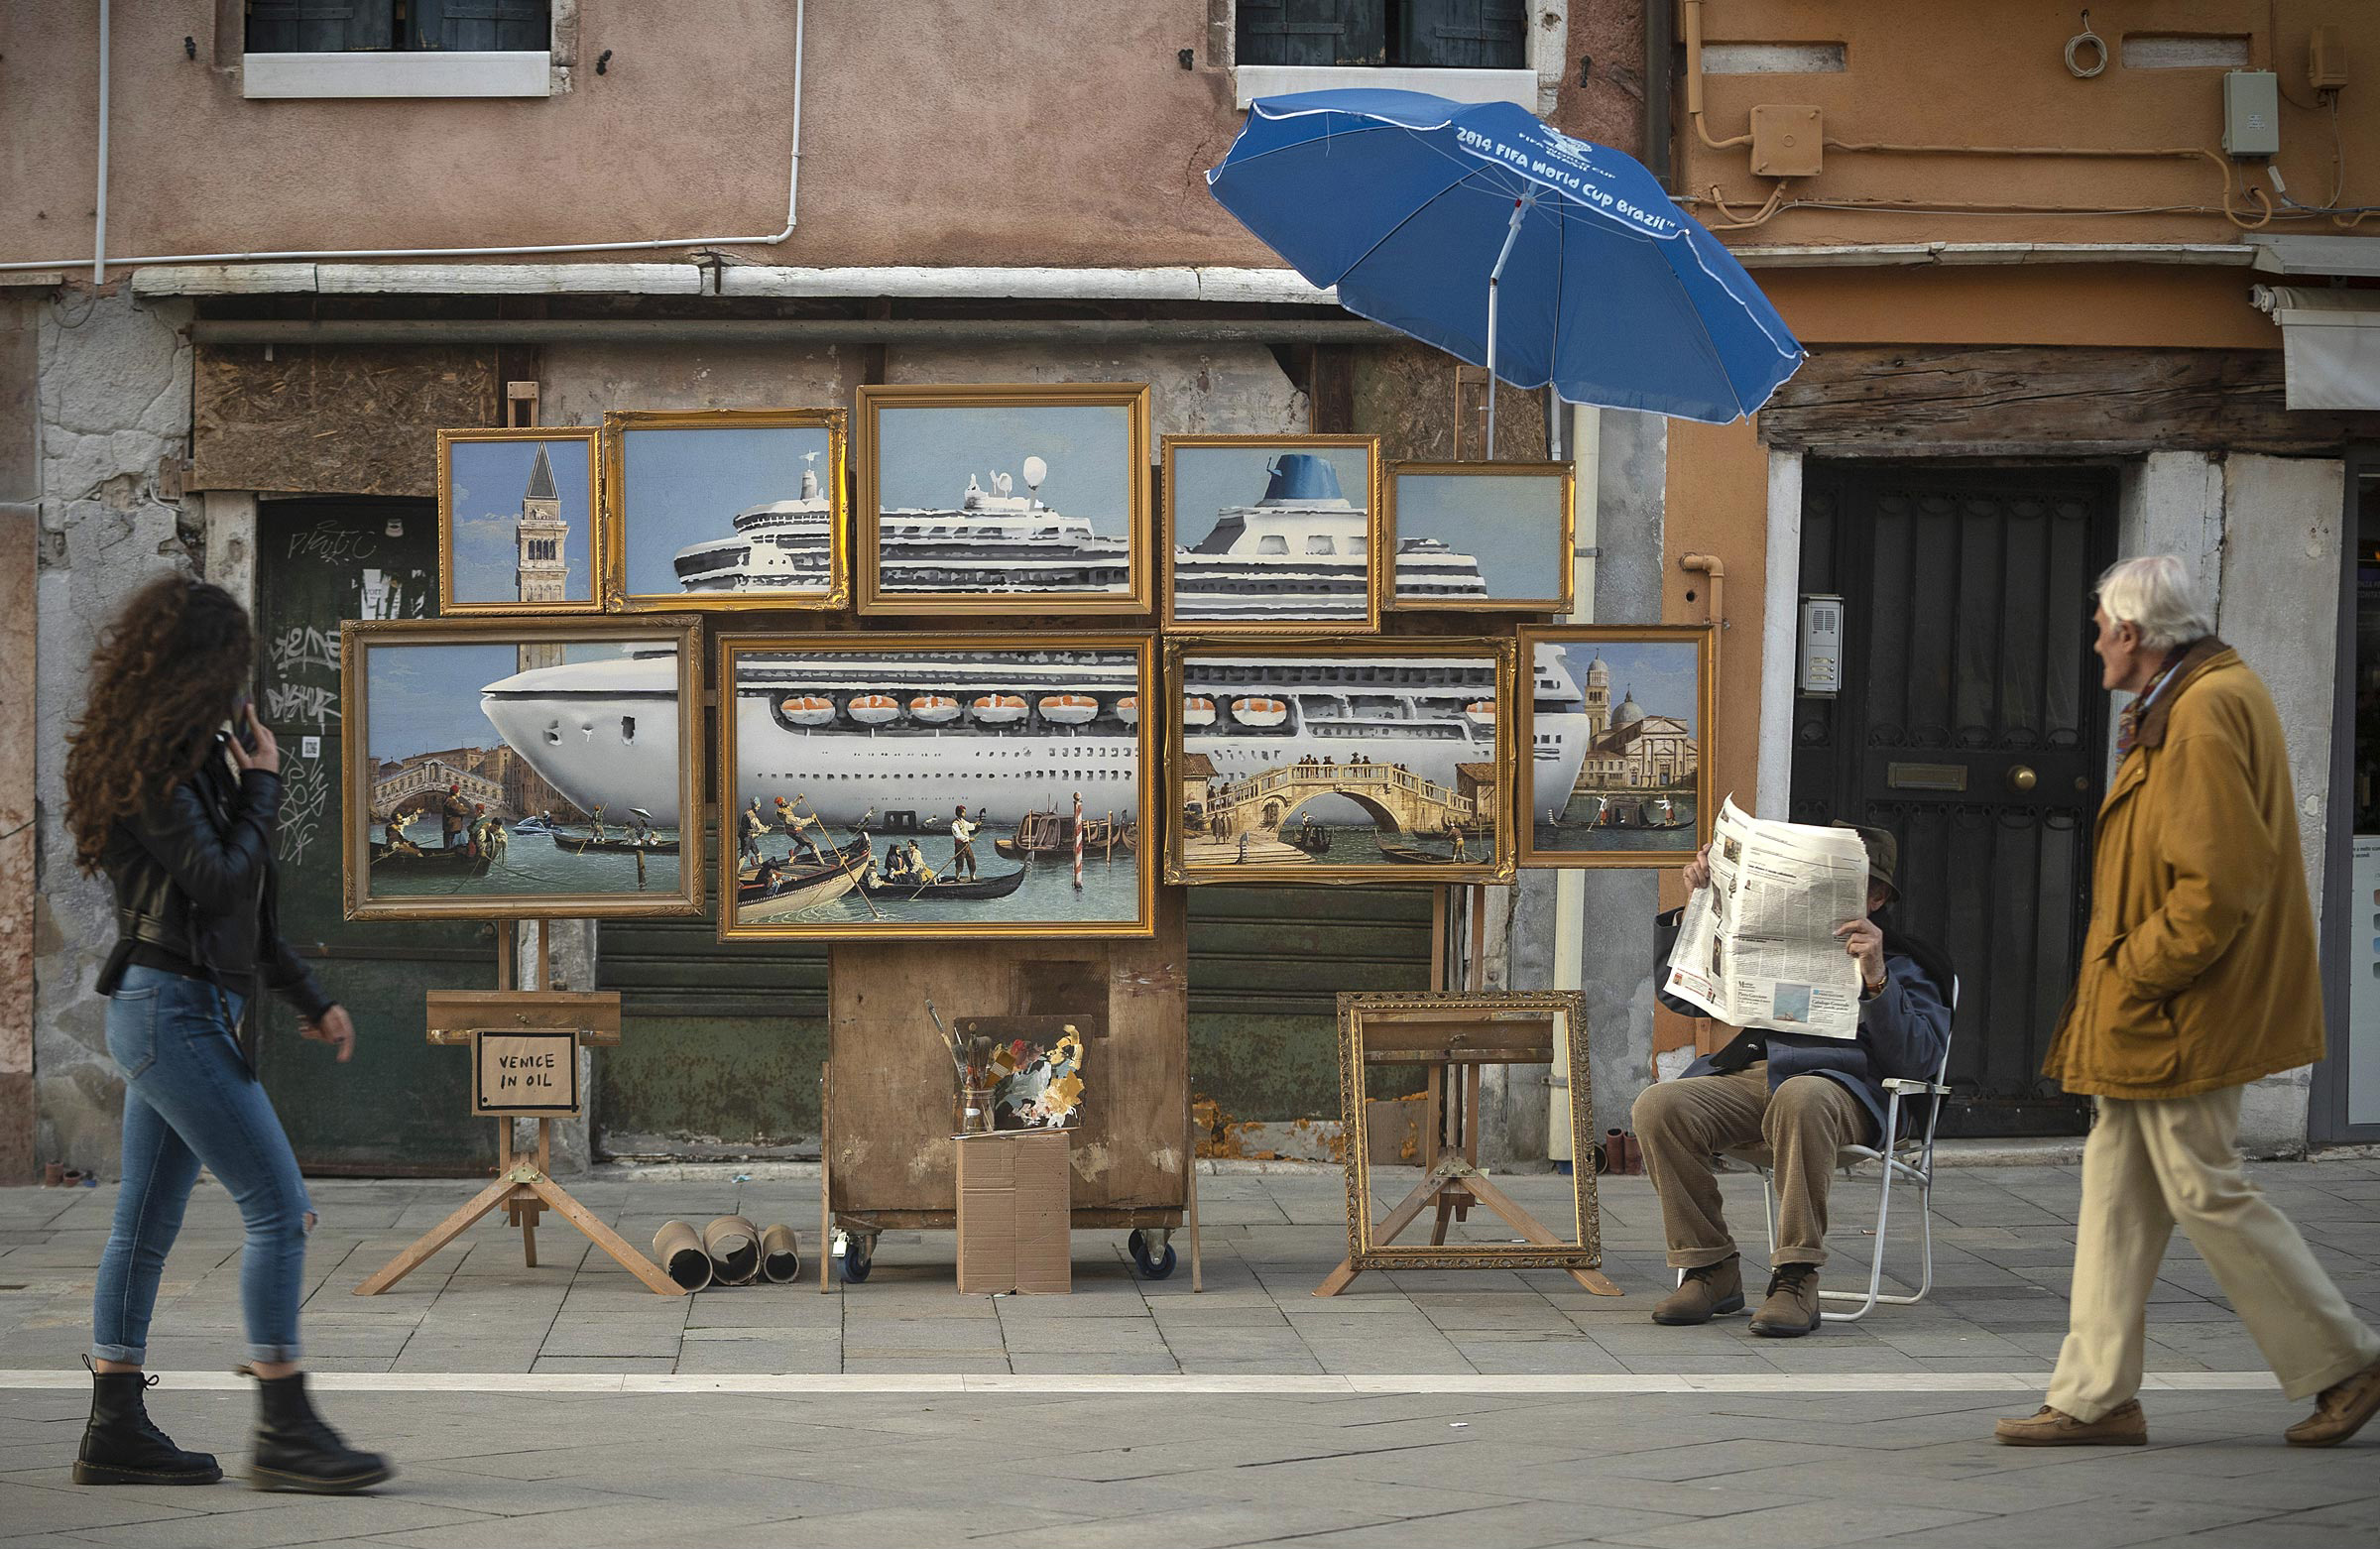 Venice in Oil - Quelle: banksy.co.uk